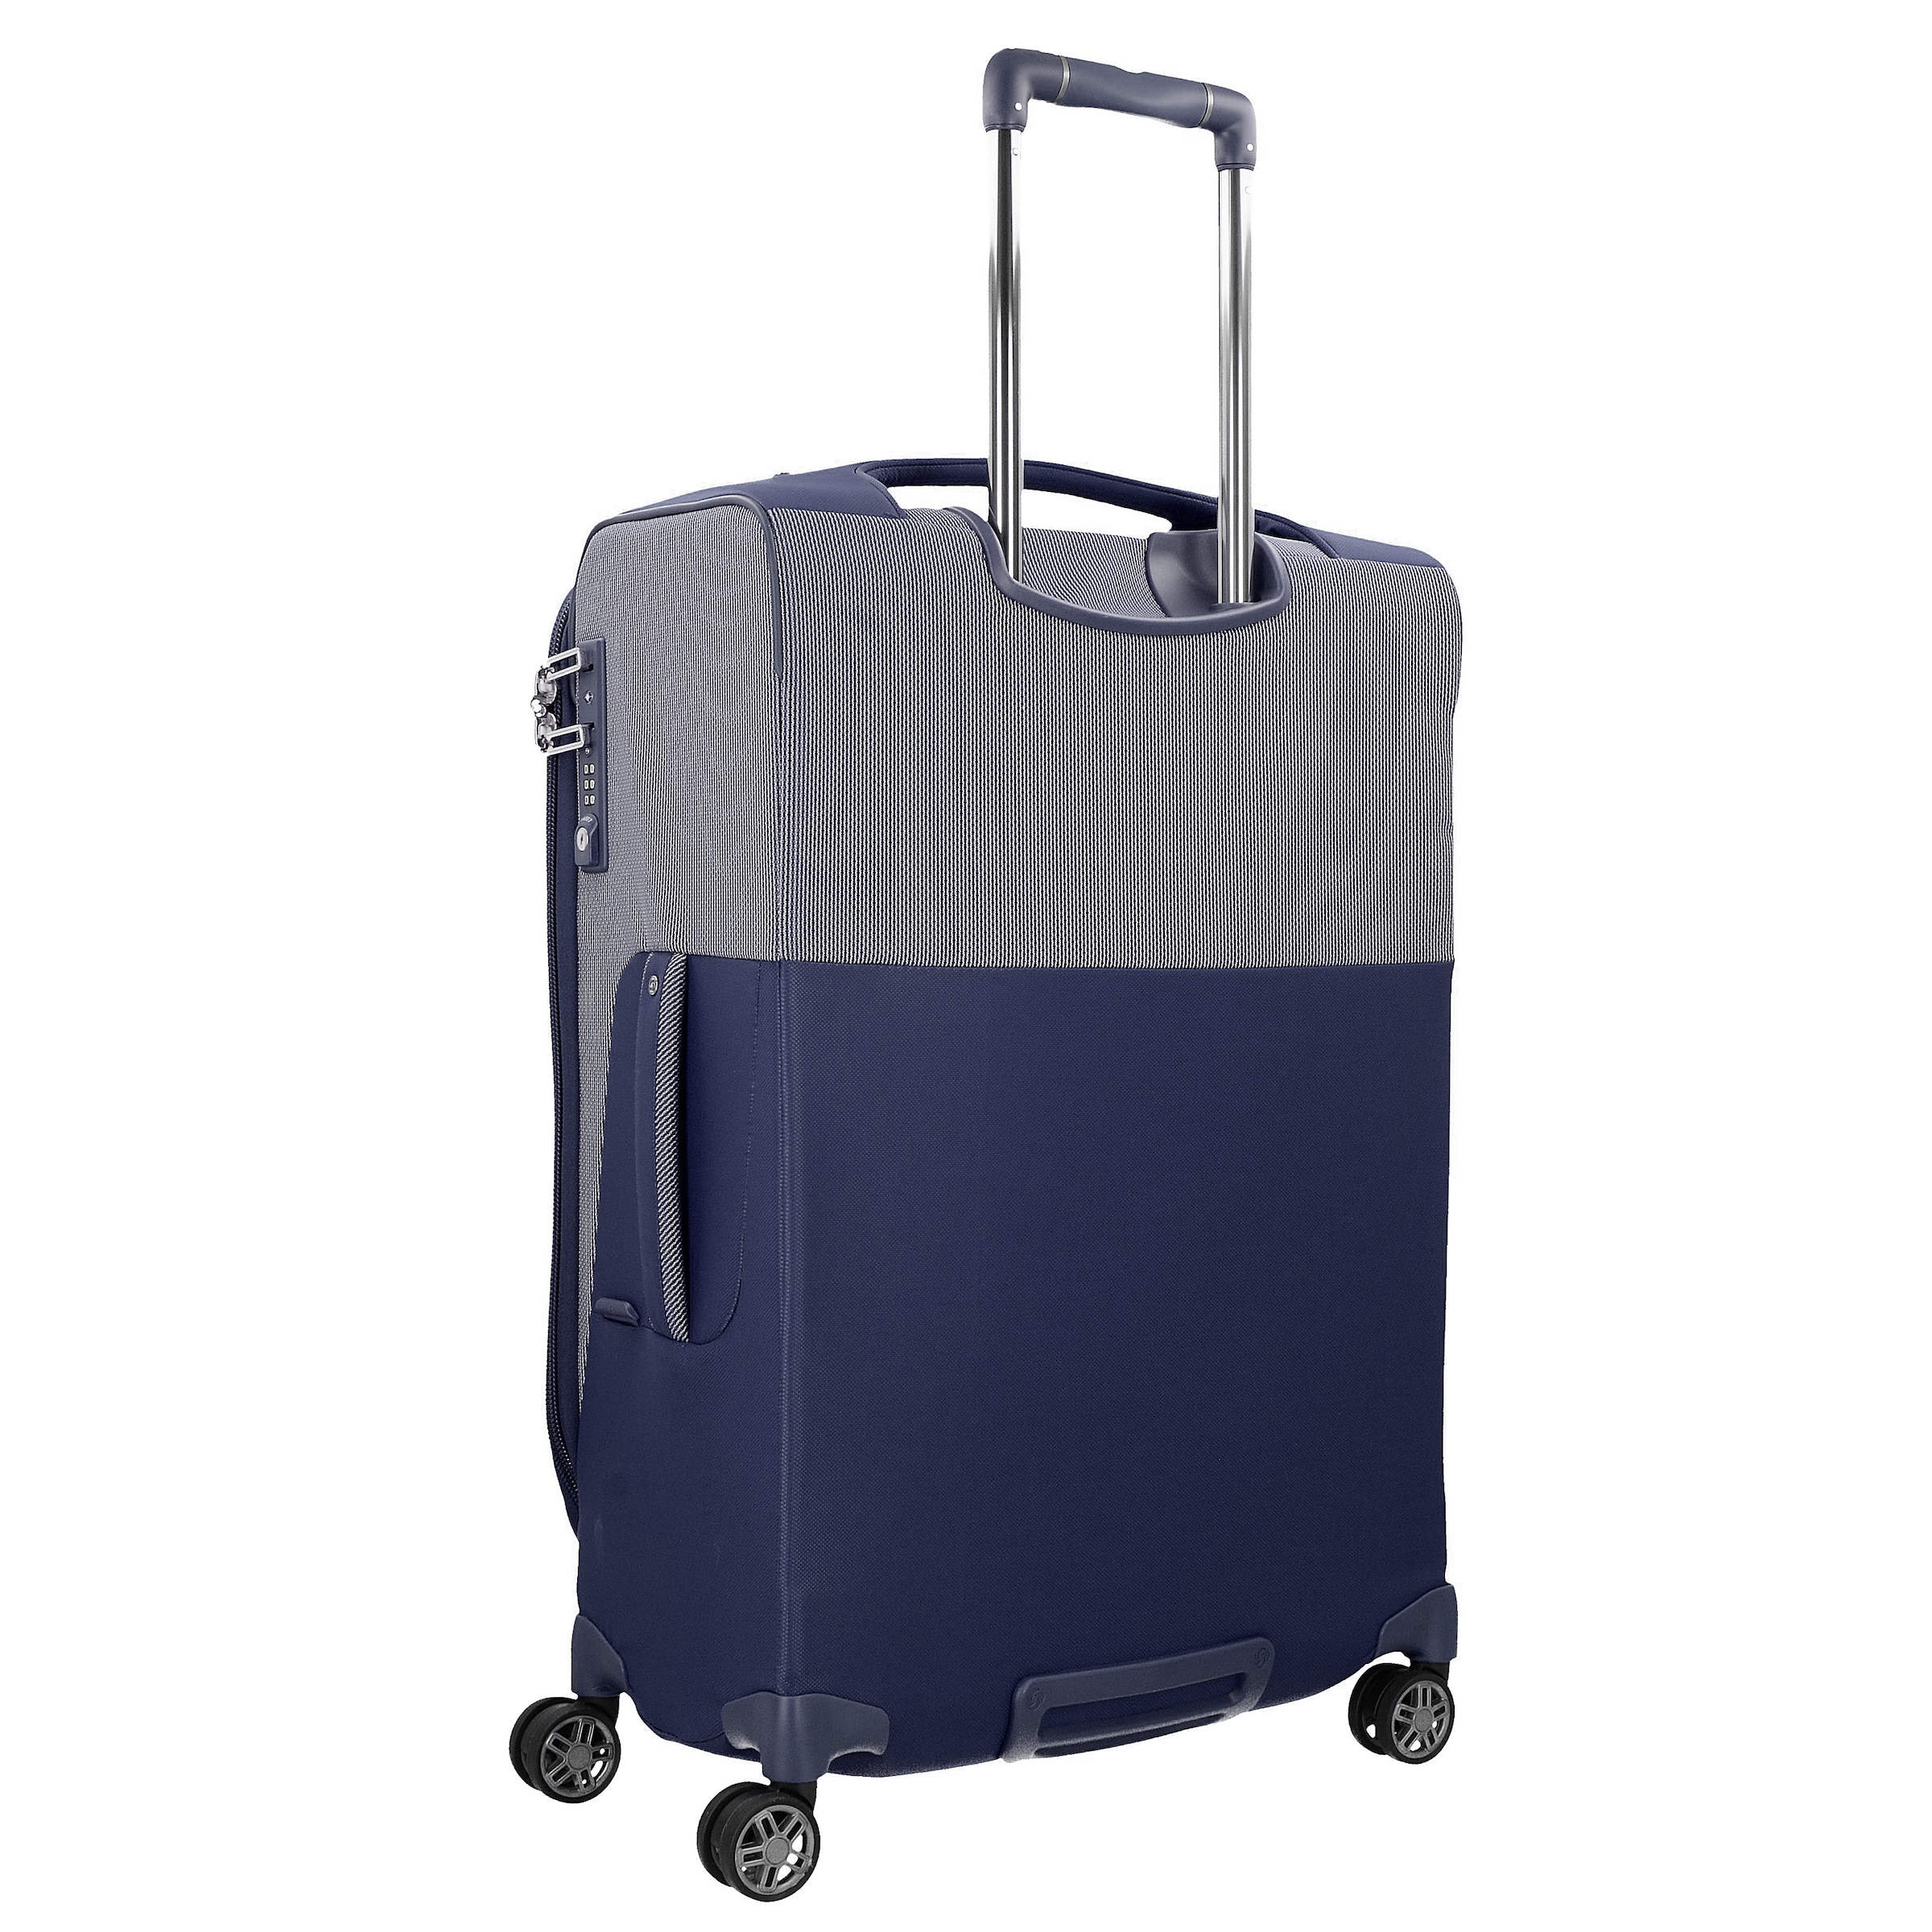 In Trolley Dunkelblau Samsonite Trolley Samsonite uT1J3FlKc